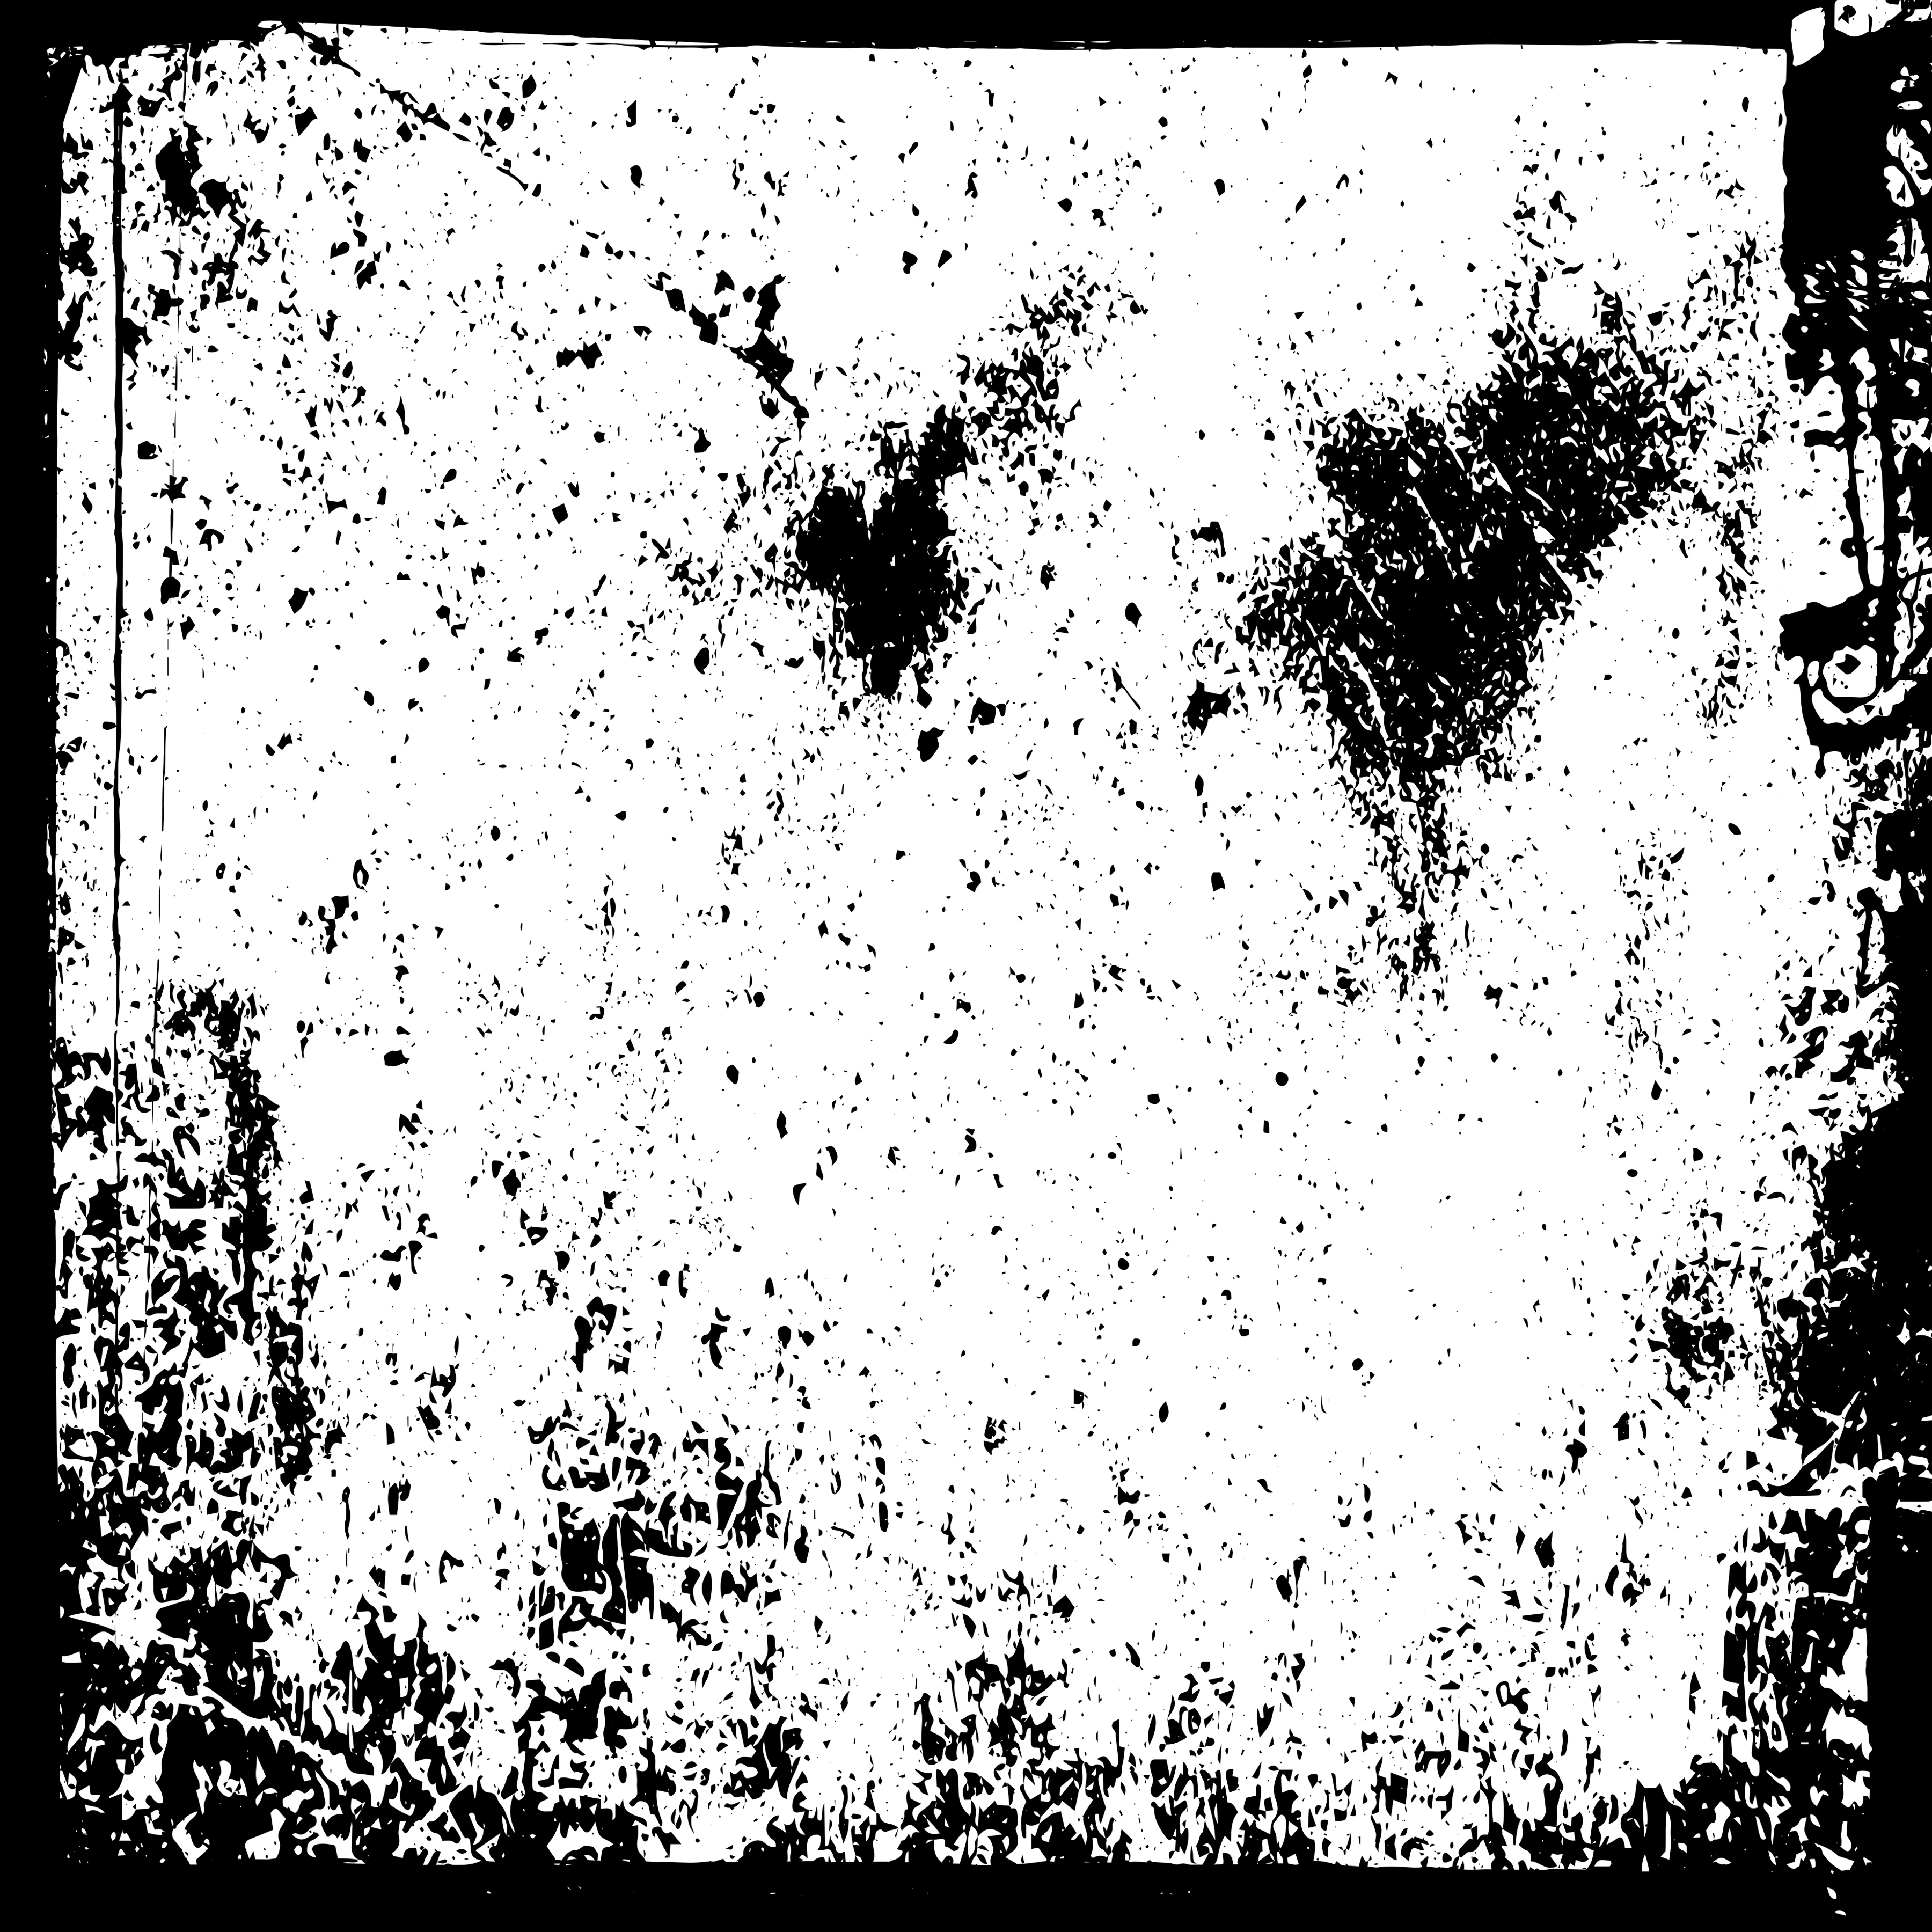 Grunge textures png. Freebie commercial use overlay